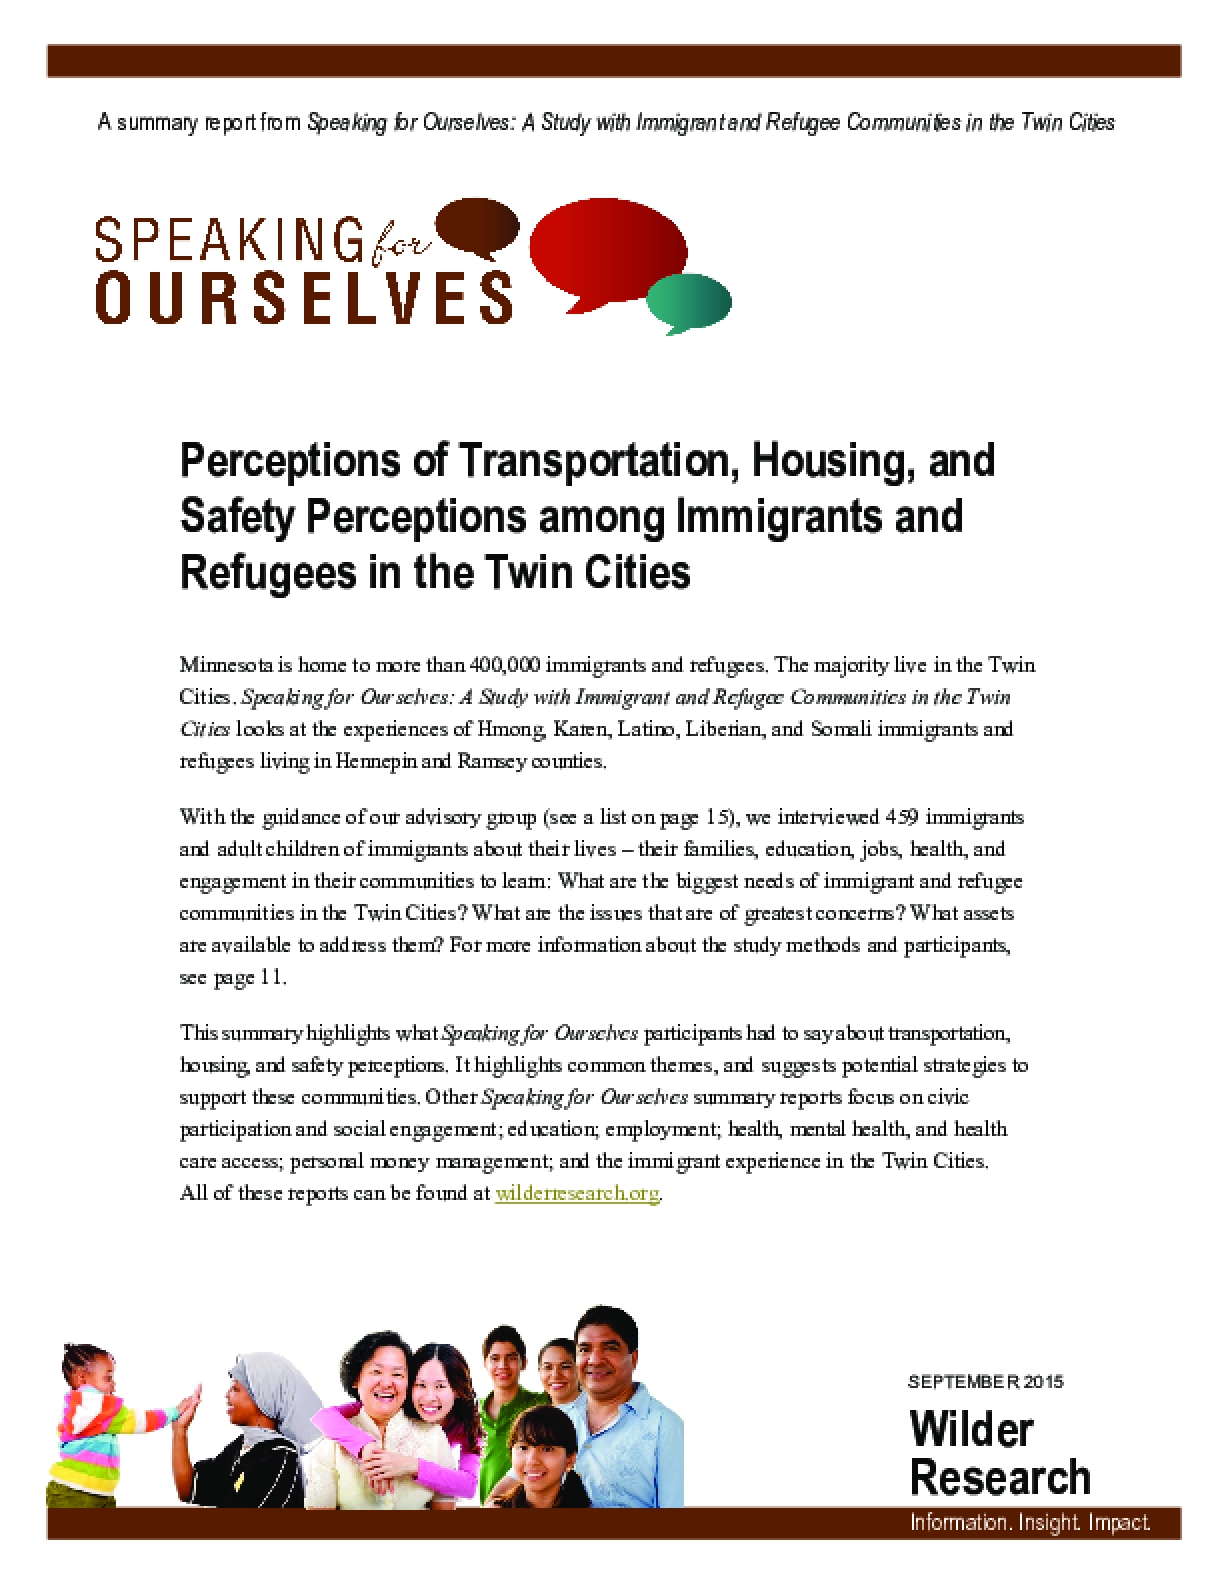 Speaking for Ourselves: Perceptions of Transportation, Housing, and Safety Perceptions among Immigrants and Refugees in the Twin Cities